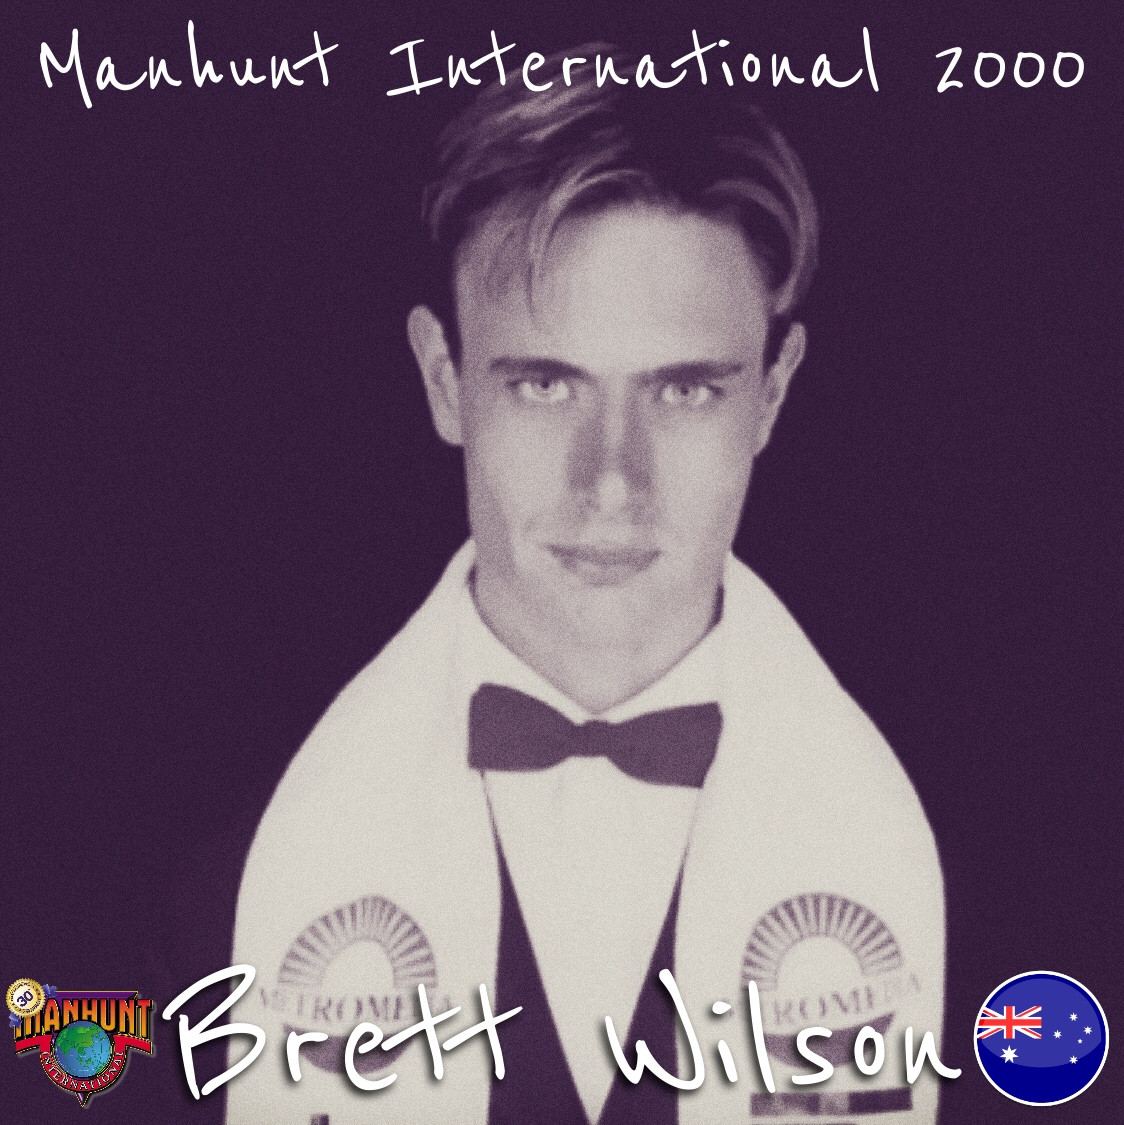 brett wilson, manhunt international 2000. Qg1mcl10